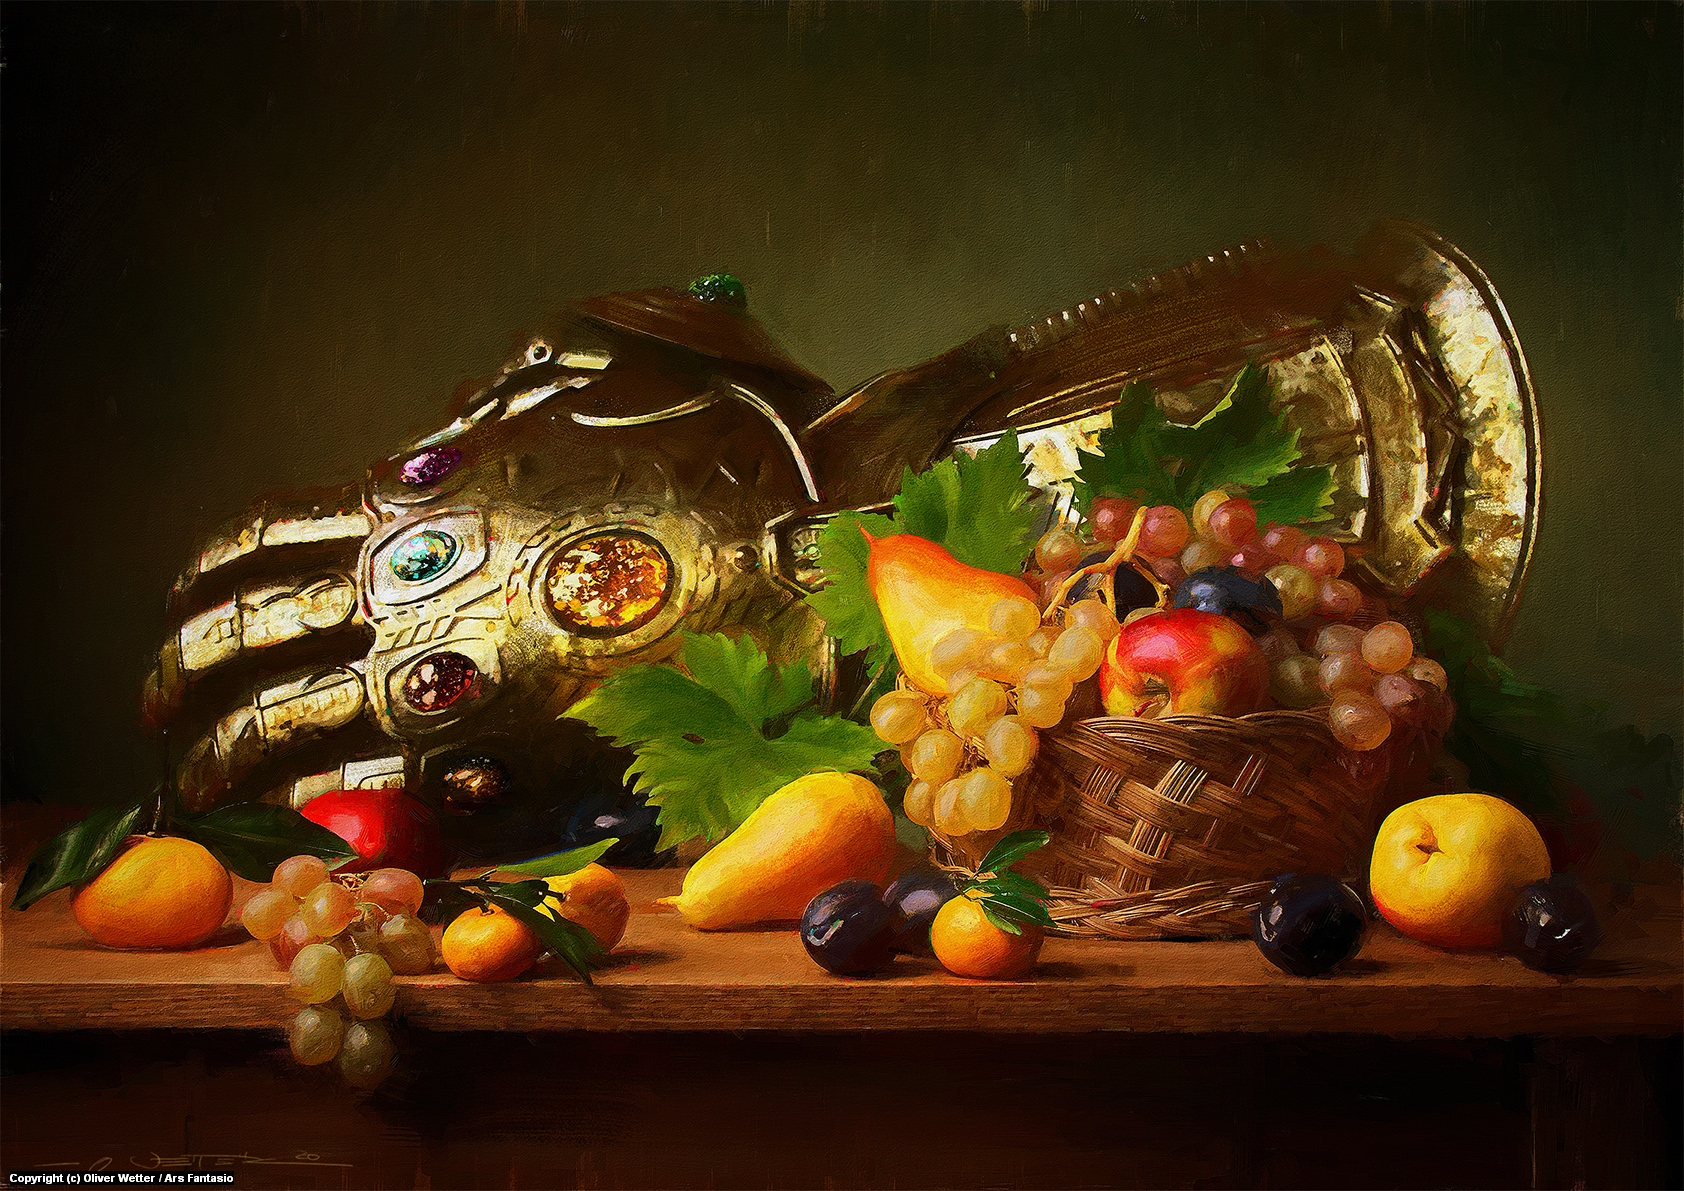 Infinity Gauntlet on Still Life Artwork by Oliver Wetter